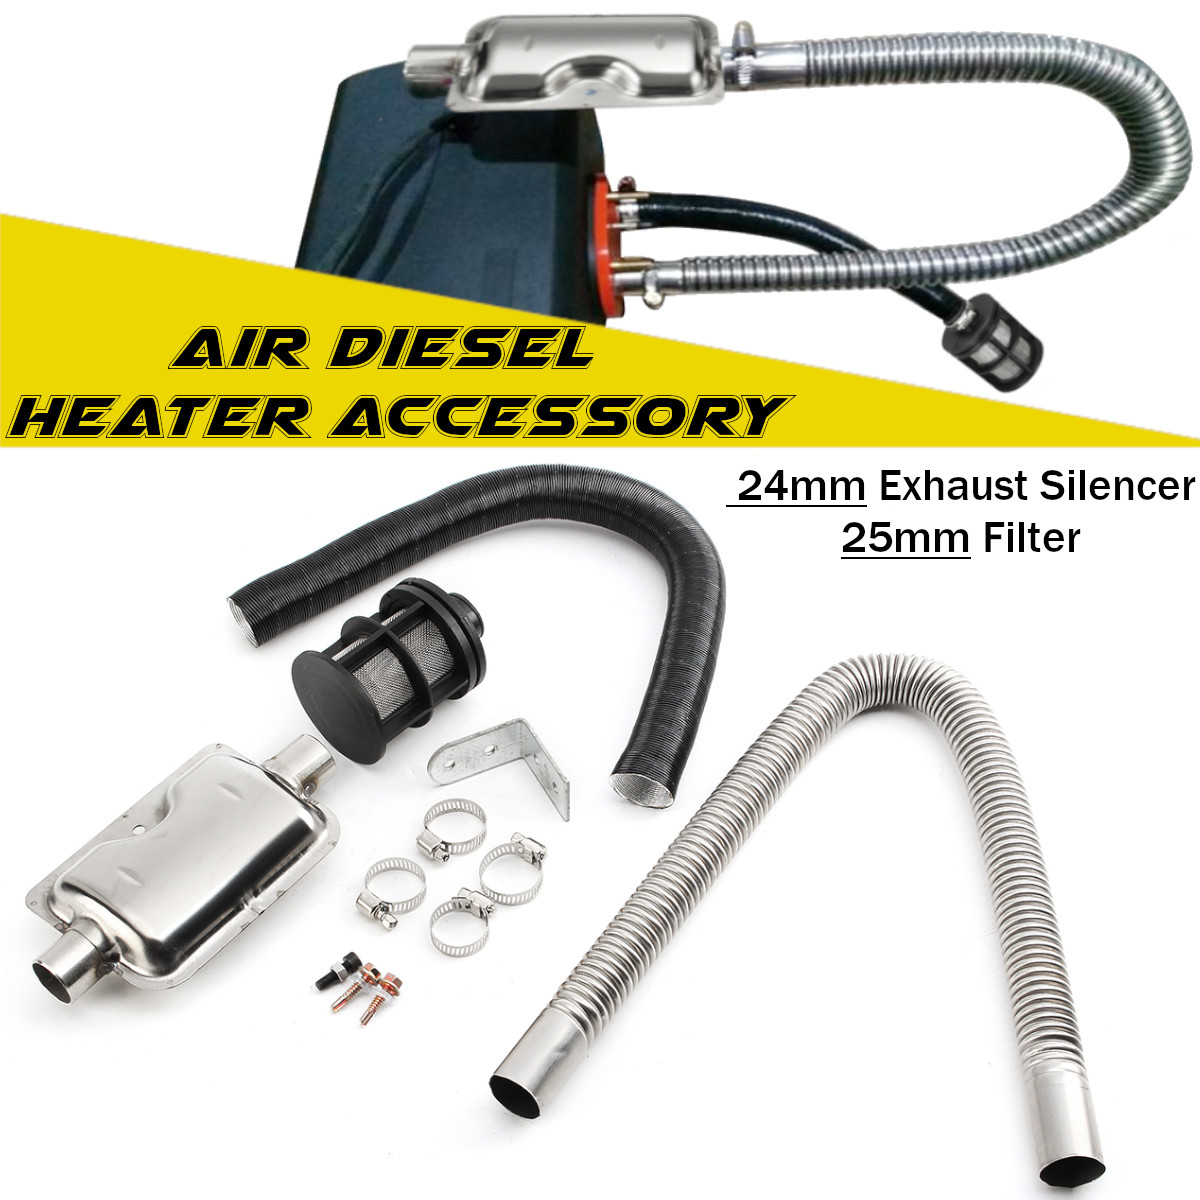 Kecheer Air Diesel Heater Accessory 24mm Exhaust Silencer Filter Exhaust Kit Intake Pipe Set Car Accessories